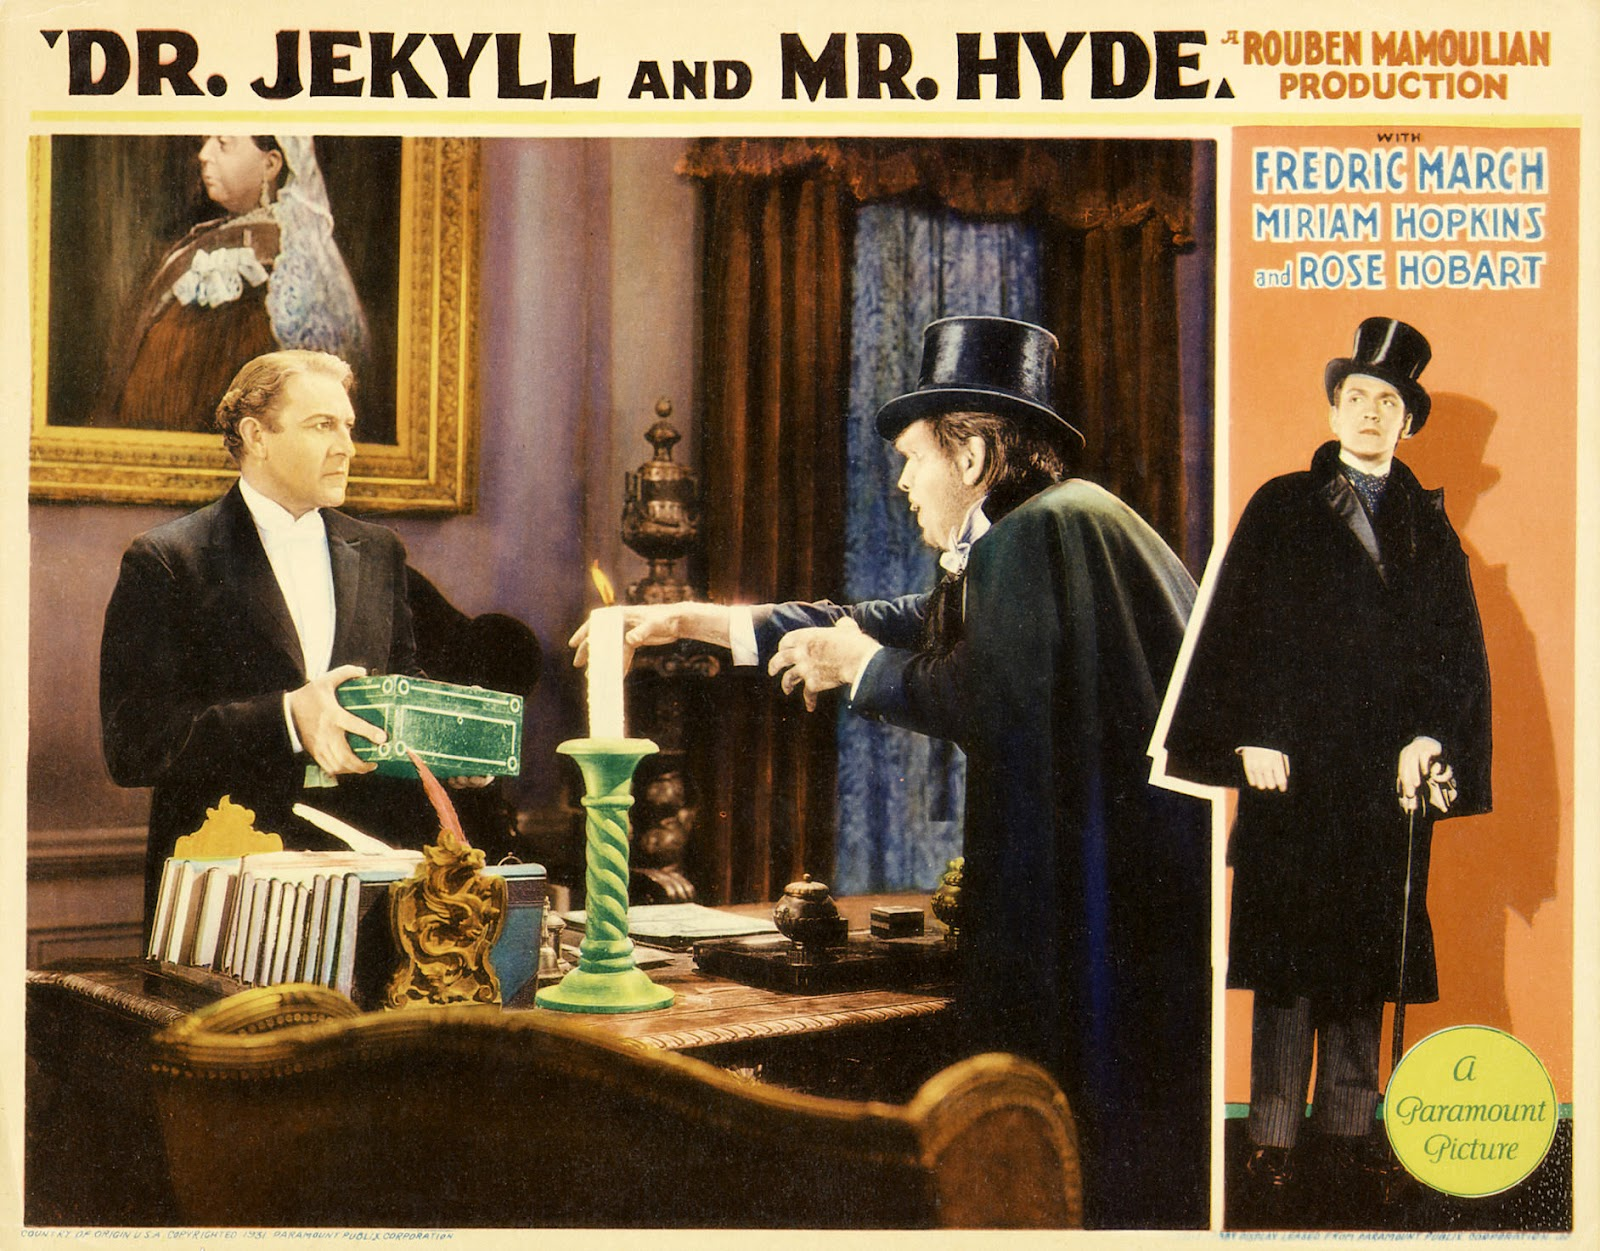 dr jekyll and mr hyde a 4 the strange case of dr jekyll and mr hyde undemonstrative at the best, and even his friendship seemed to be founded in a similar catholicity of good-nature.